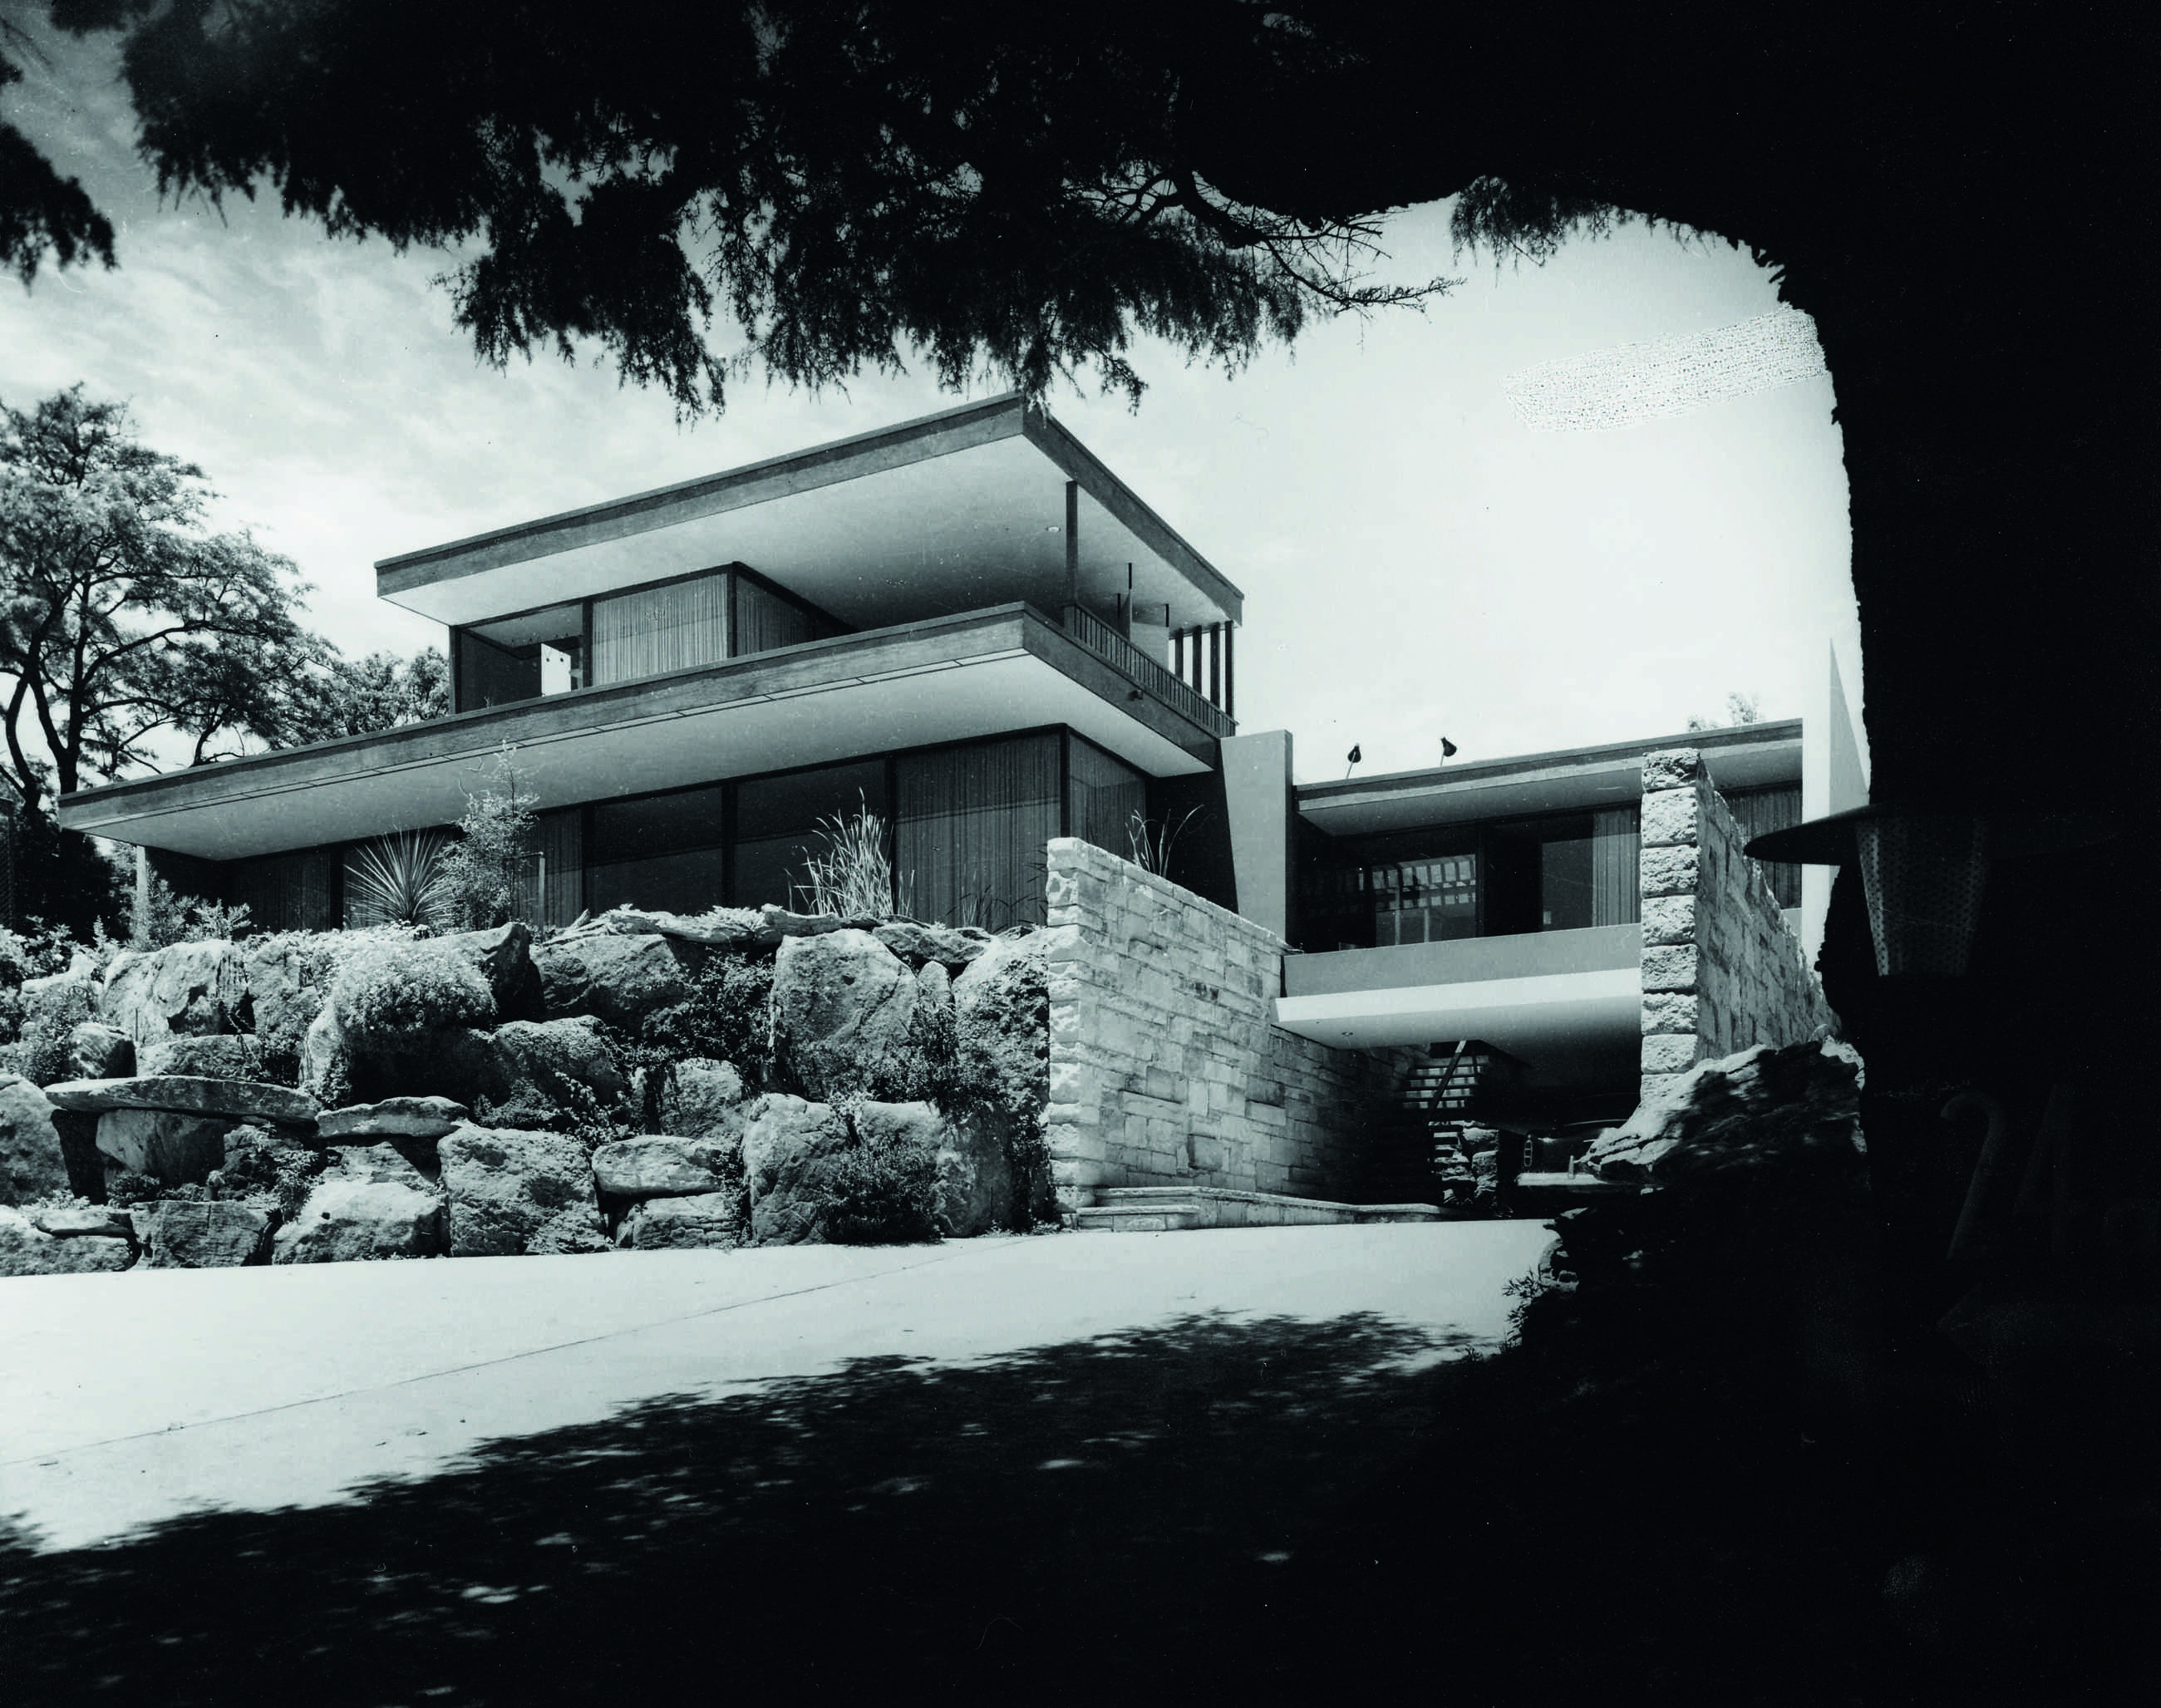 The Kelly House 1 at 24a Victoria Road, Bellevue Hill, New South Wales, winner of the 1955 House of the Year Award from Melbourne's progressive Architecture and Arts magazine. Photo Max Dupain.